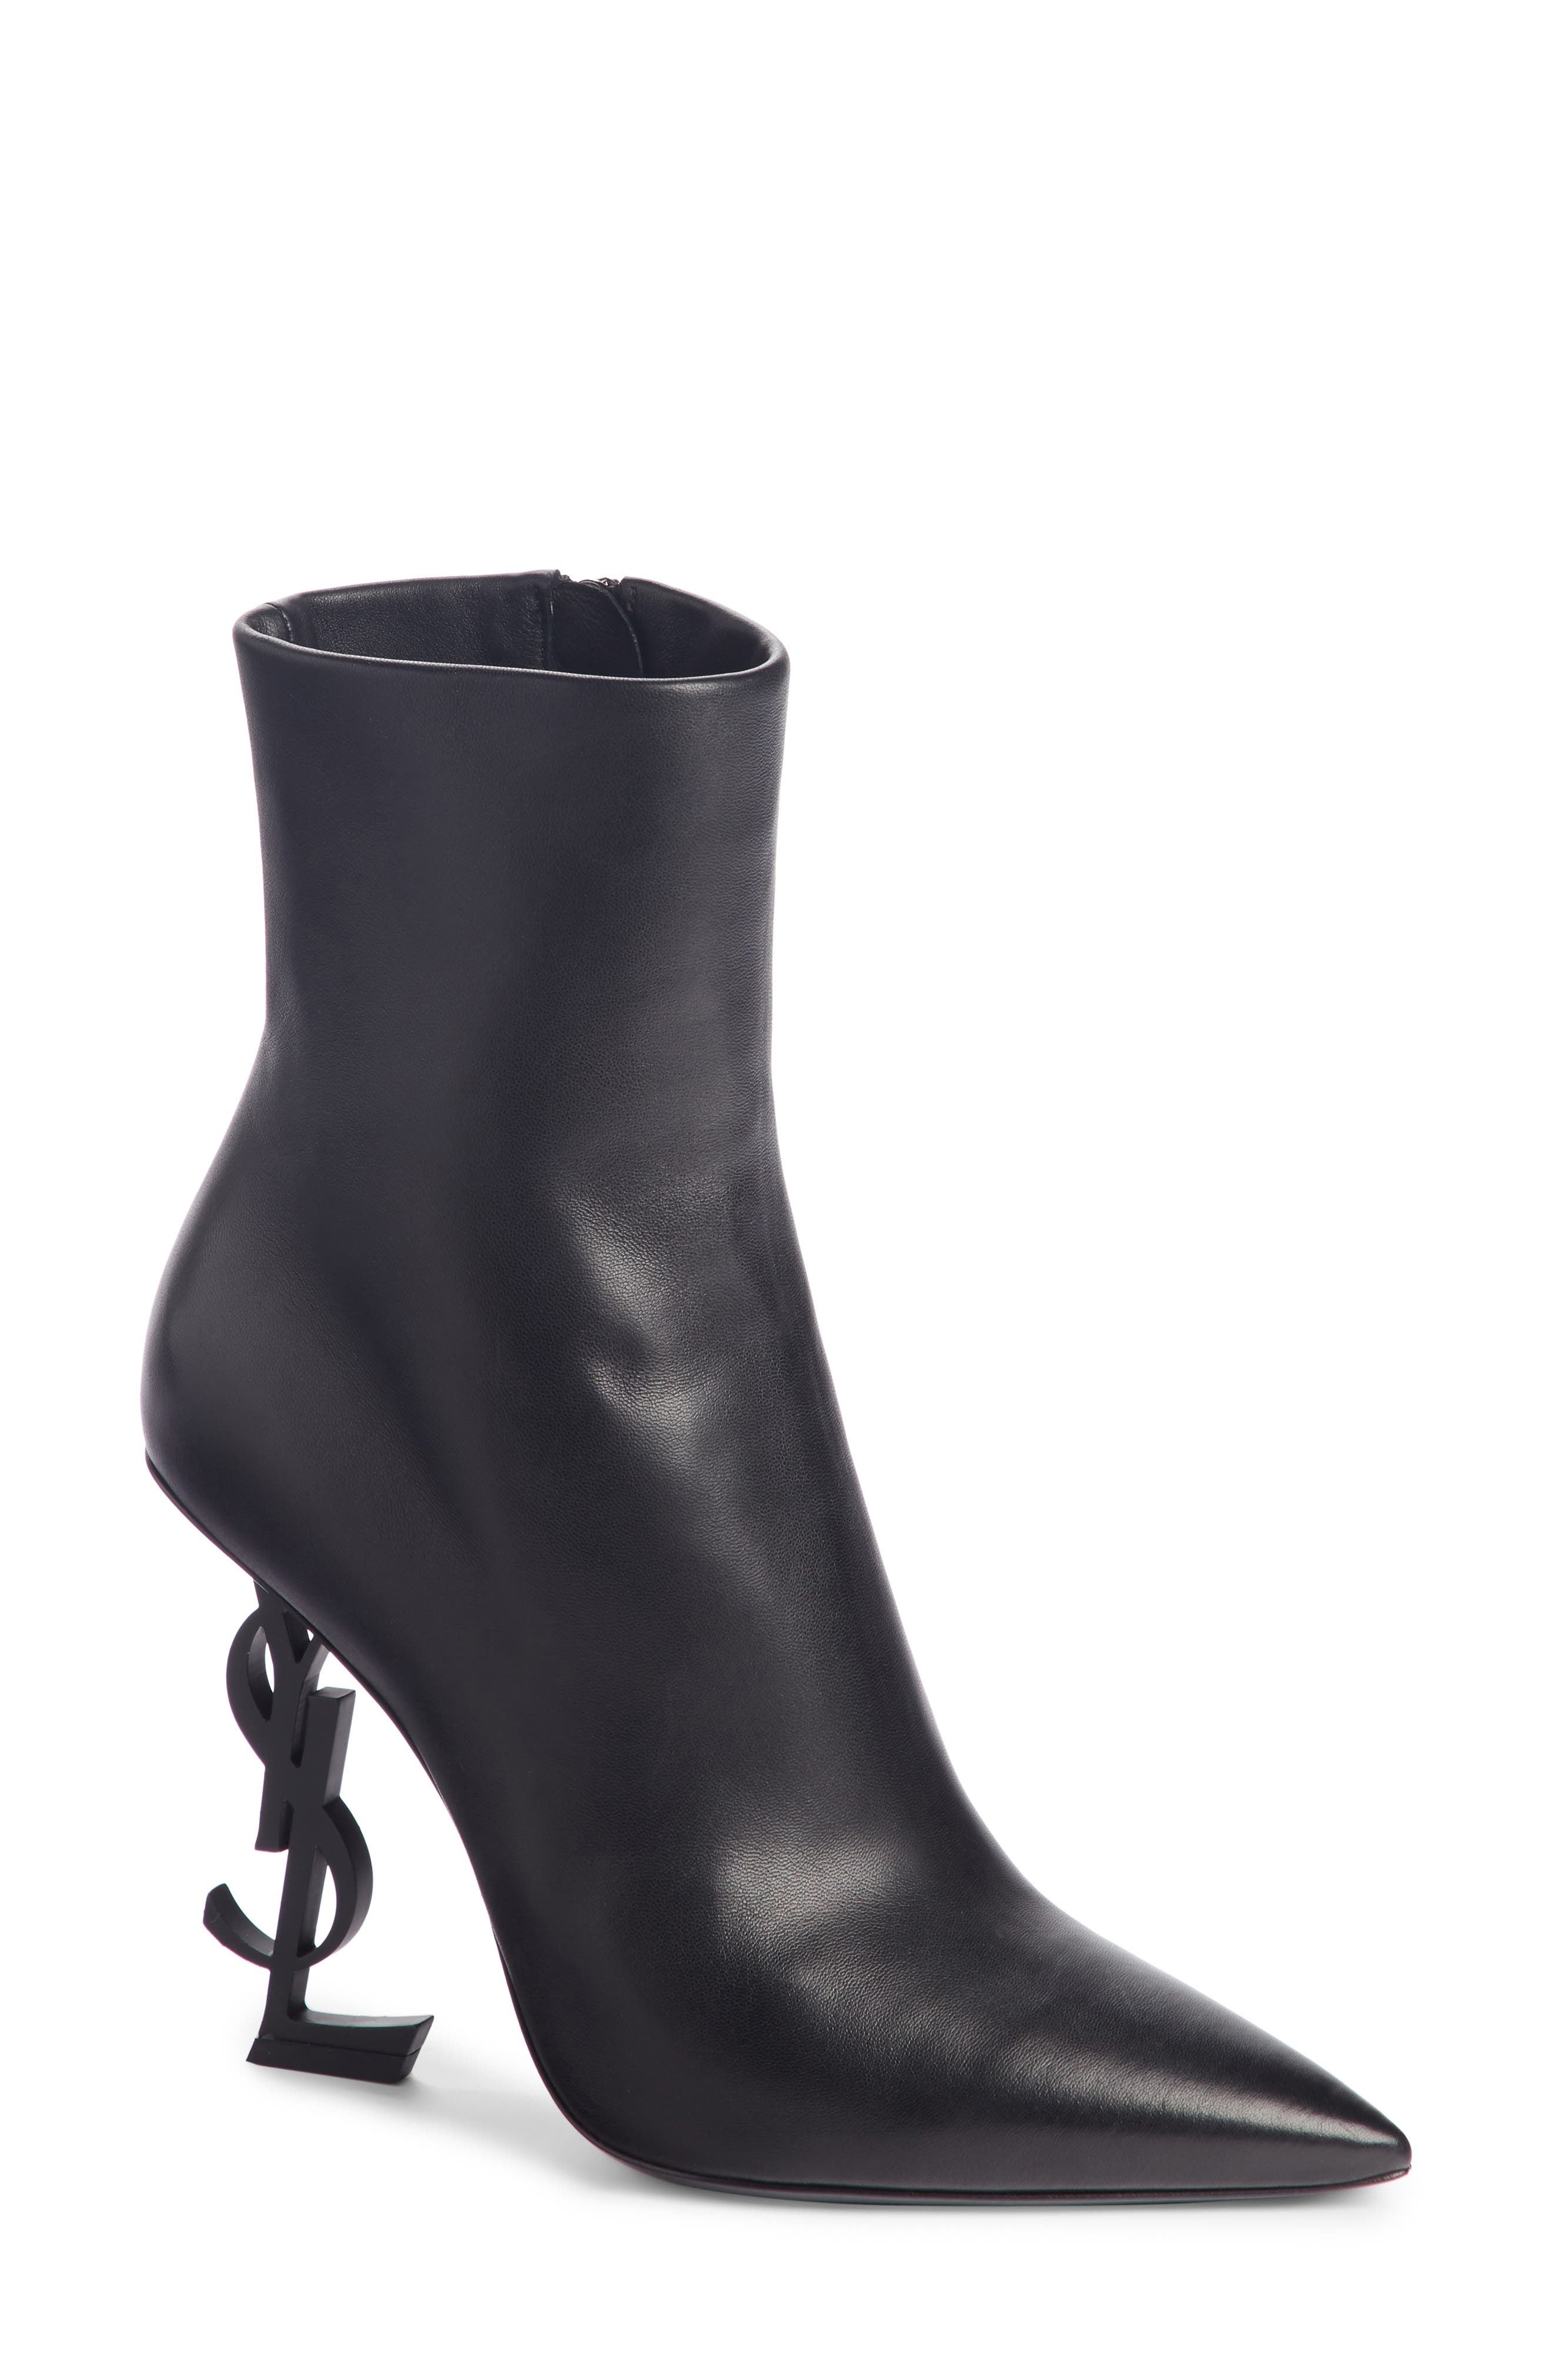 Opyum YSL Bootie,                             Main thumbnail 1, color,                             BLACK LEATHER